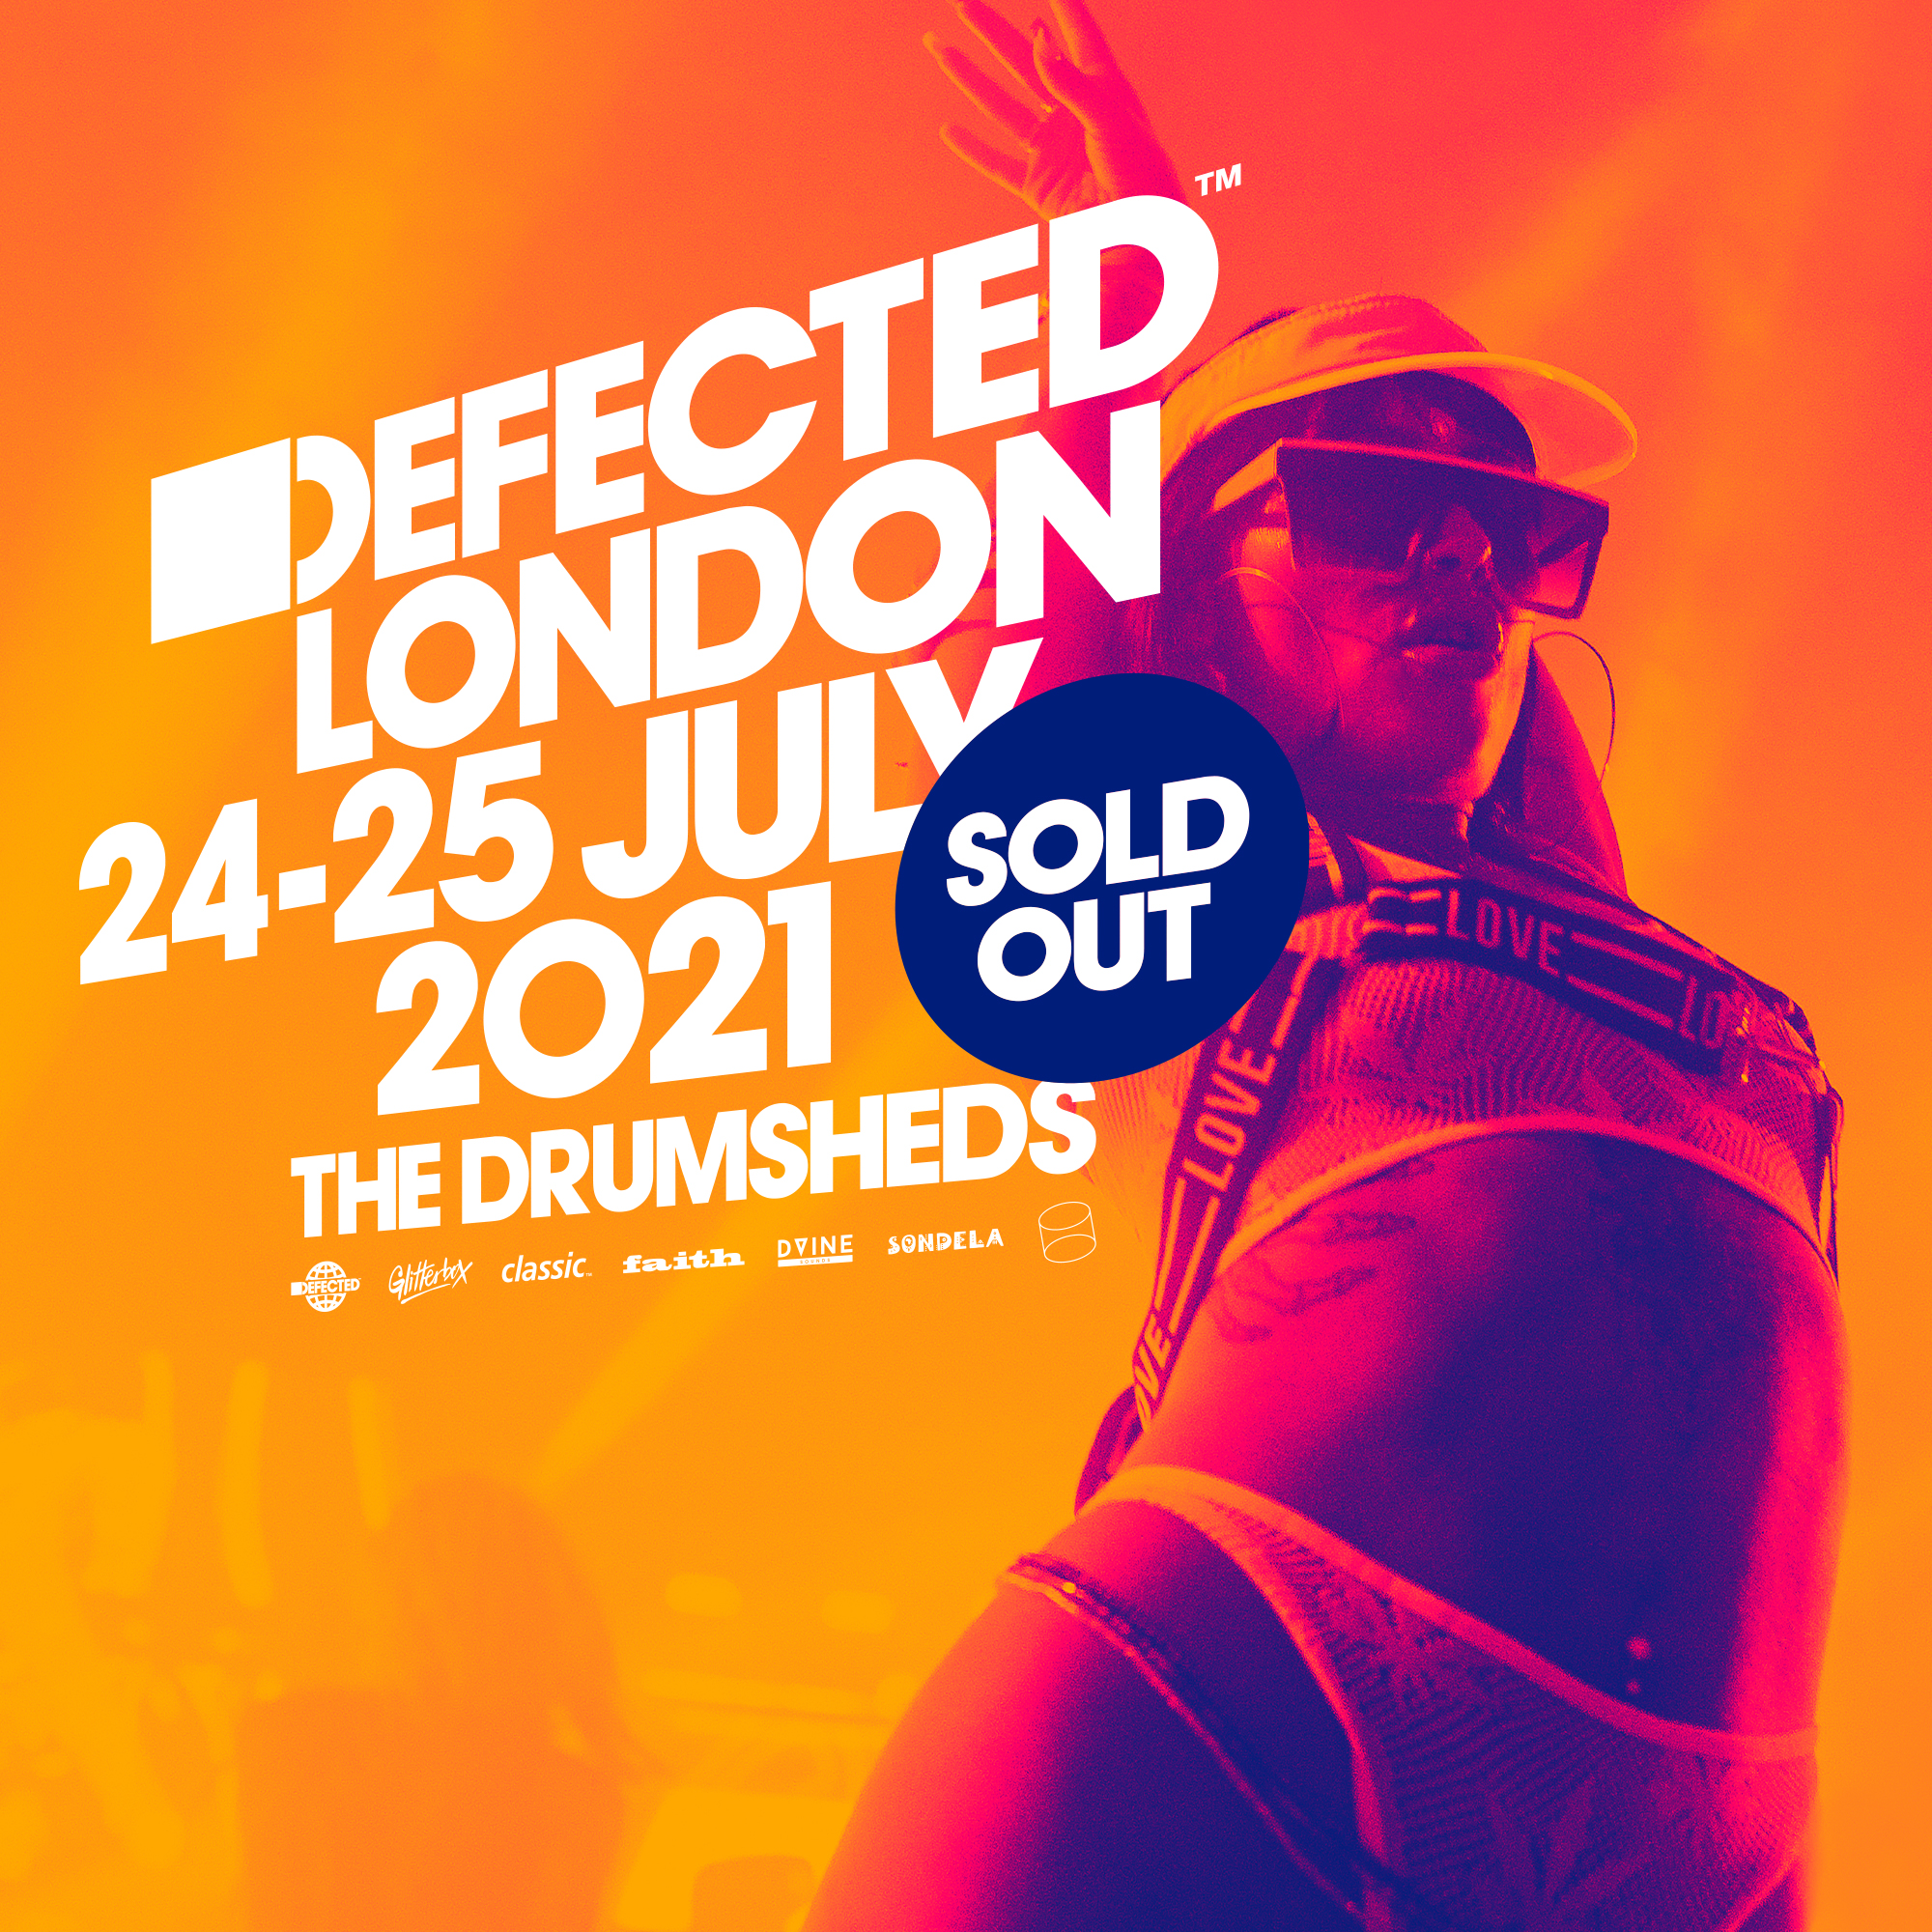 Defected London